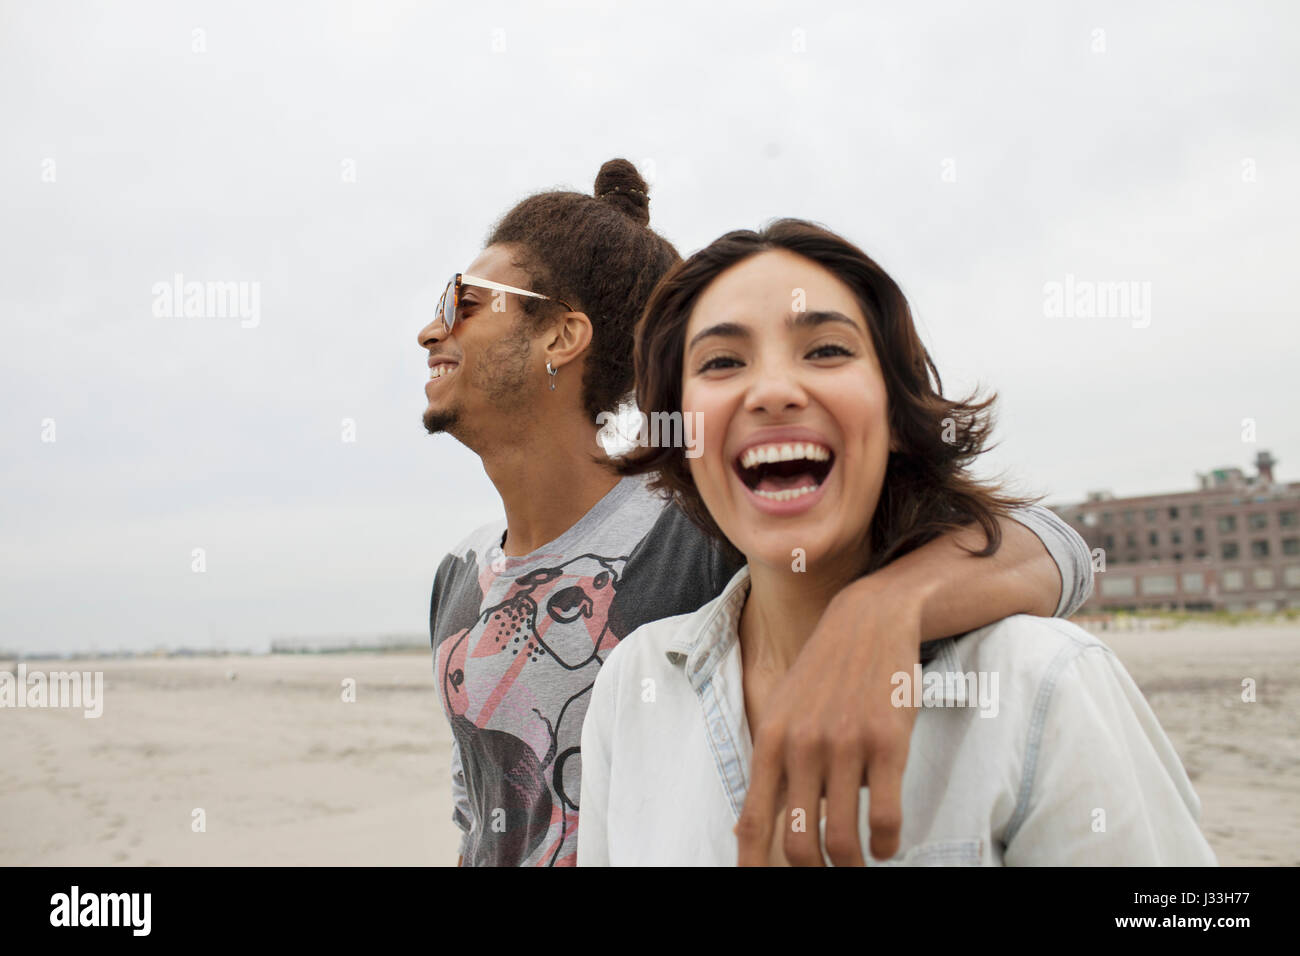 Young couple hanging out at the beach - Stock Image